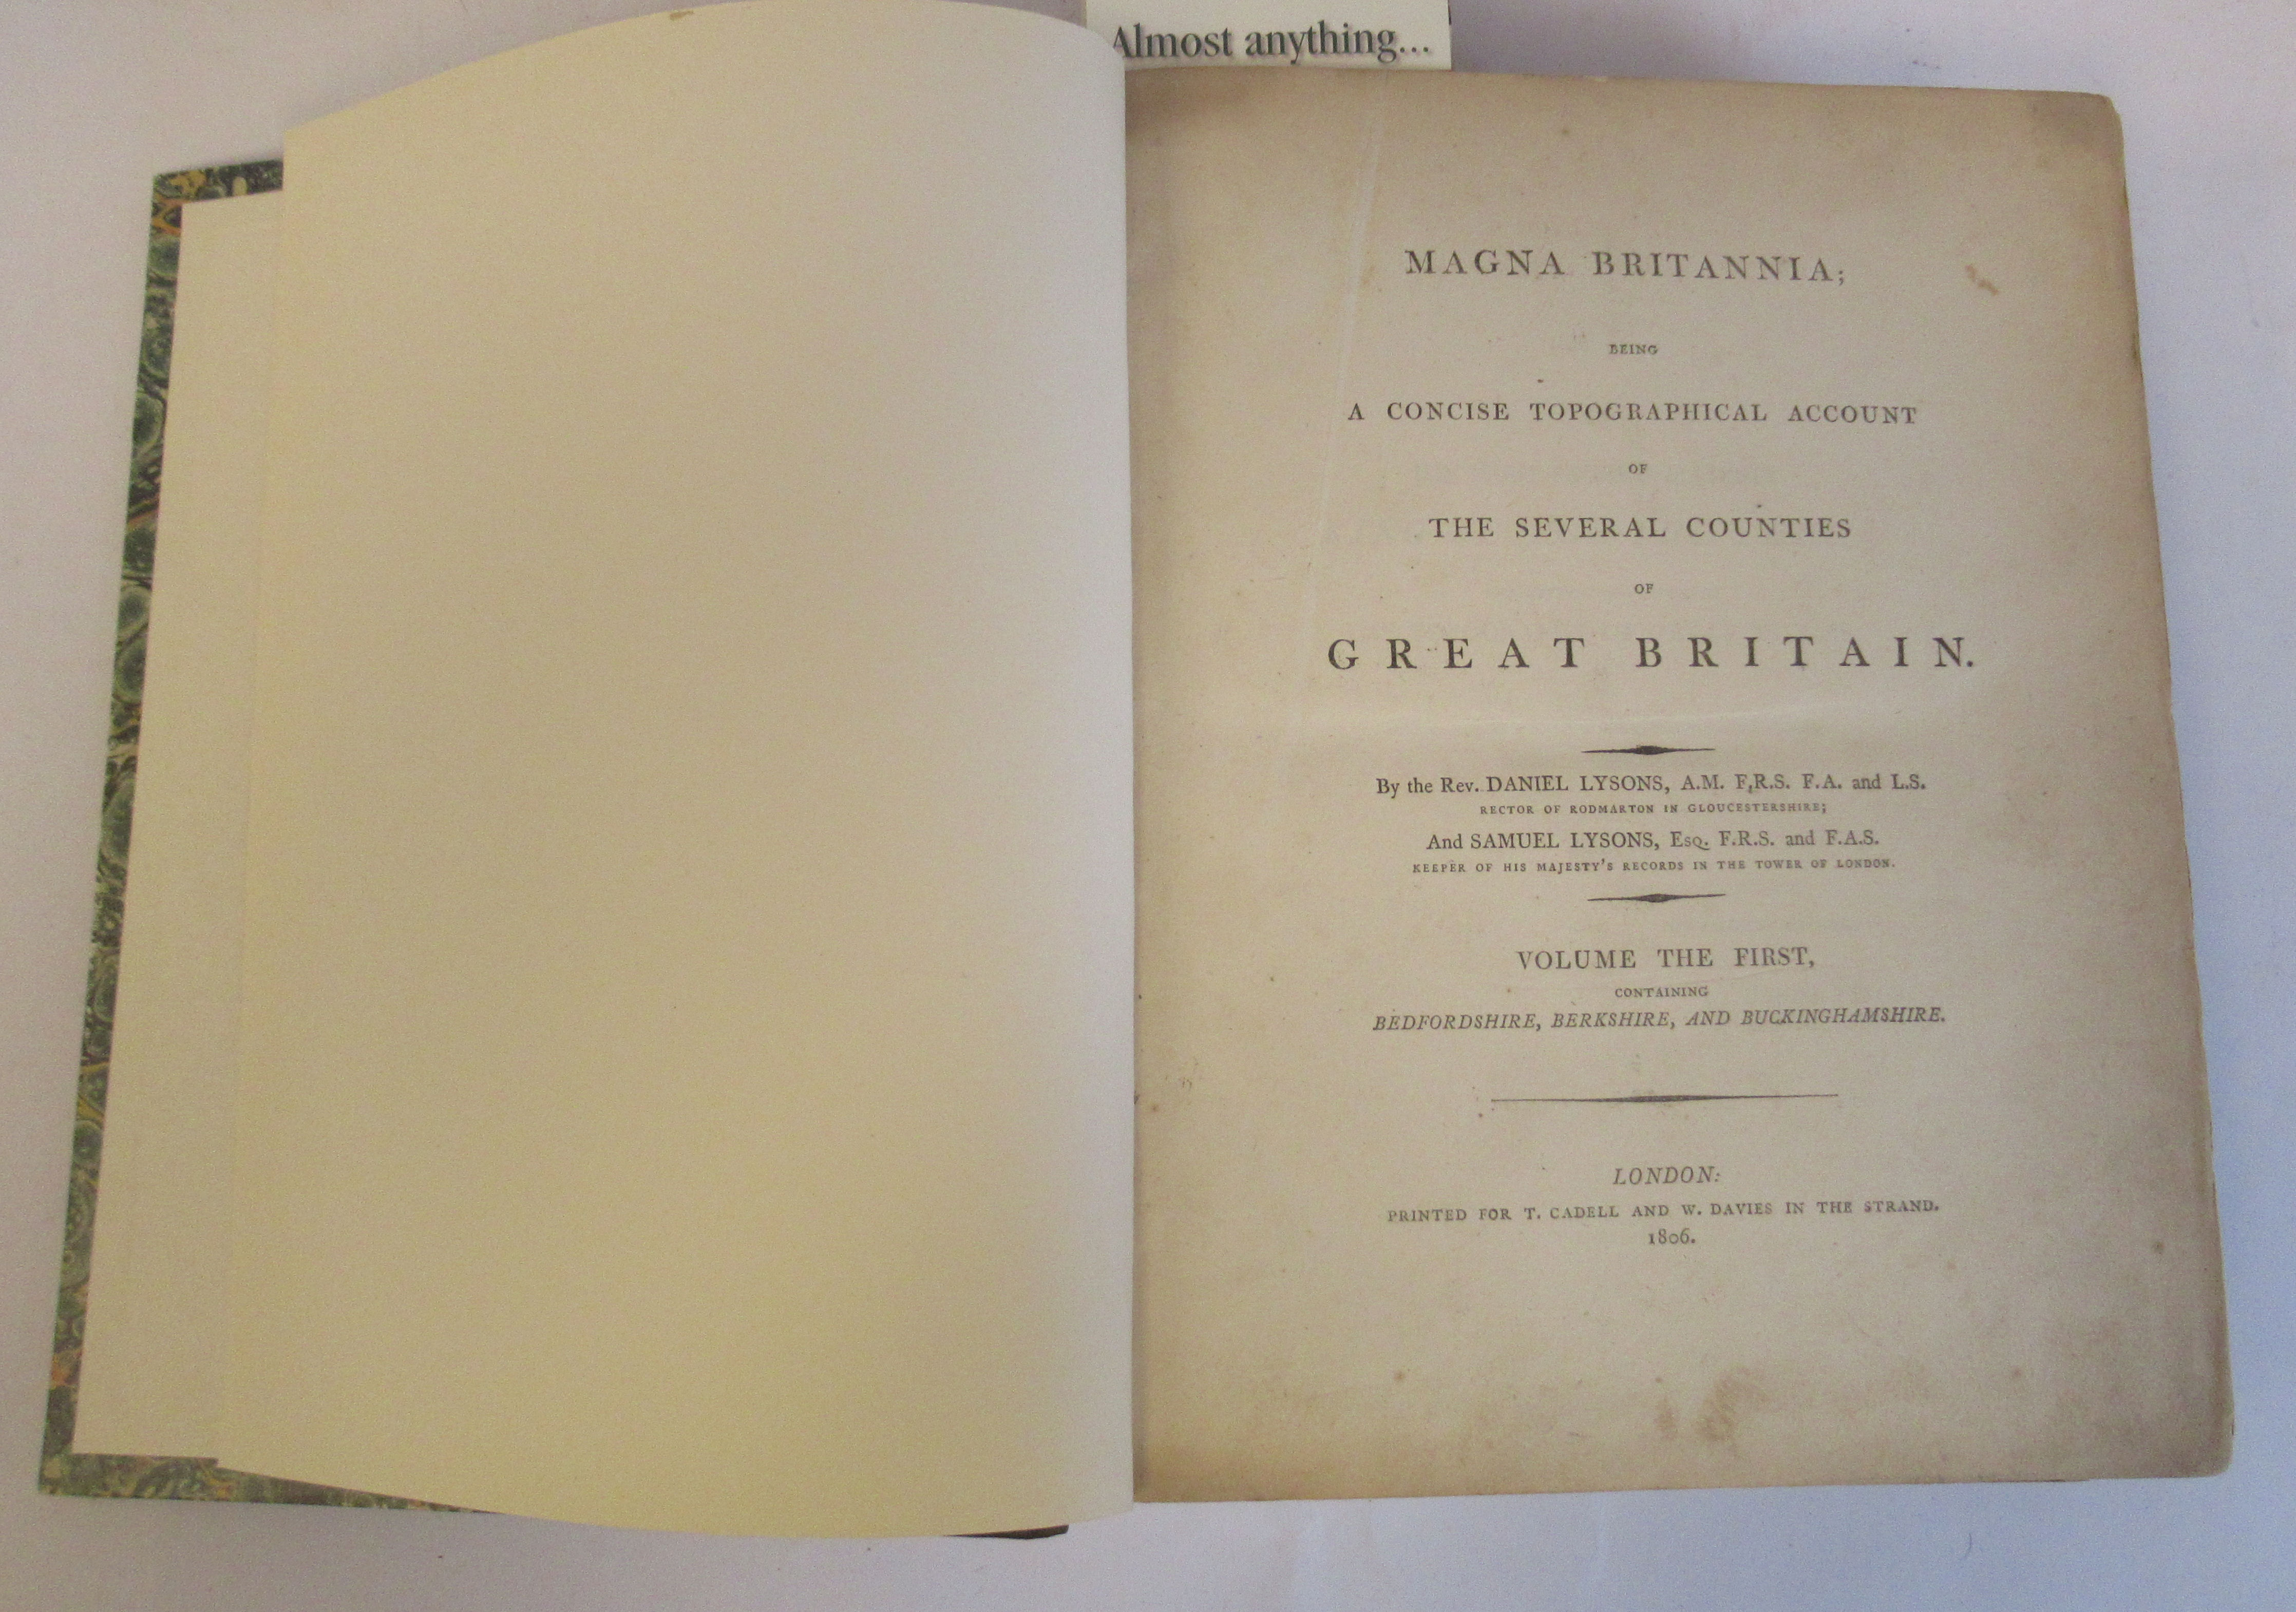 Book: 'Magna Britannia' (first volume) 'Bedfordshire & Buckinghamshire' by Danial Lysons, 44 plates,